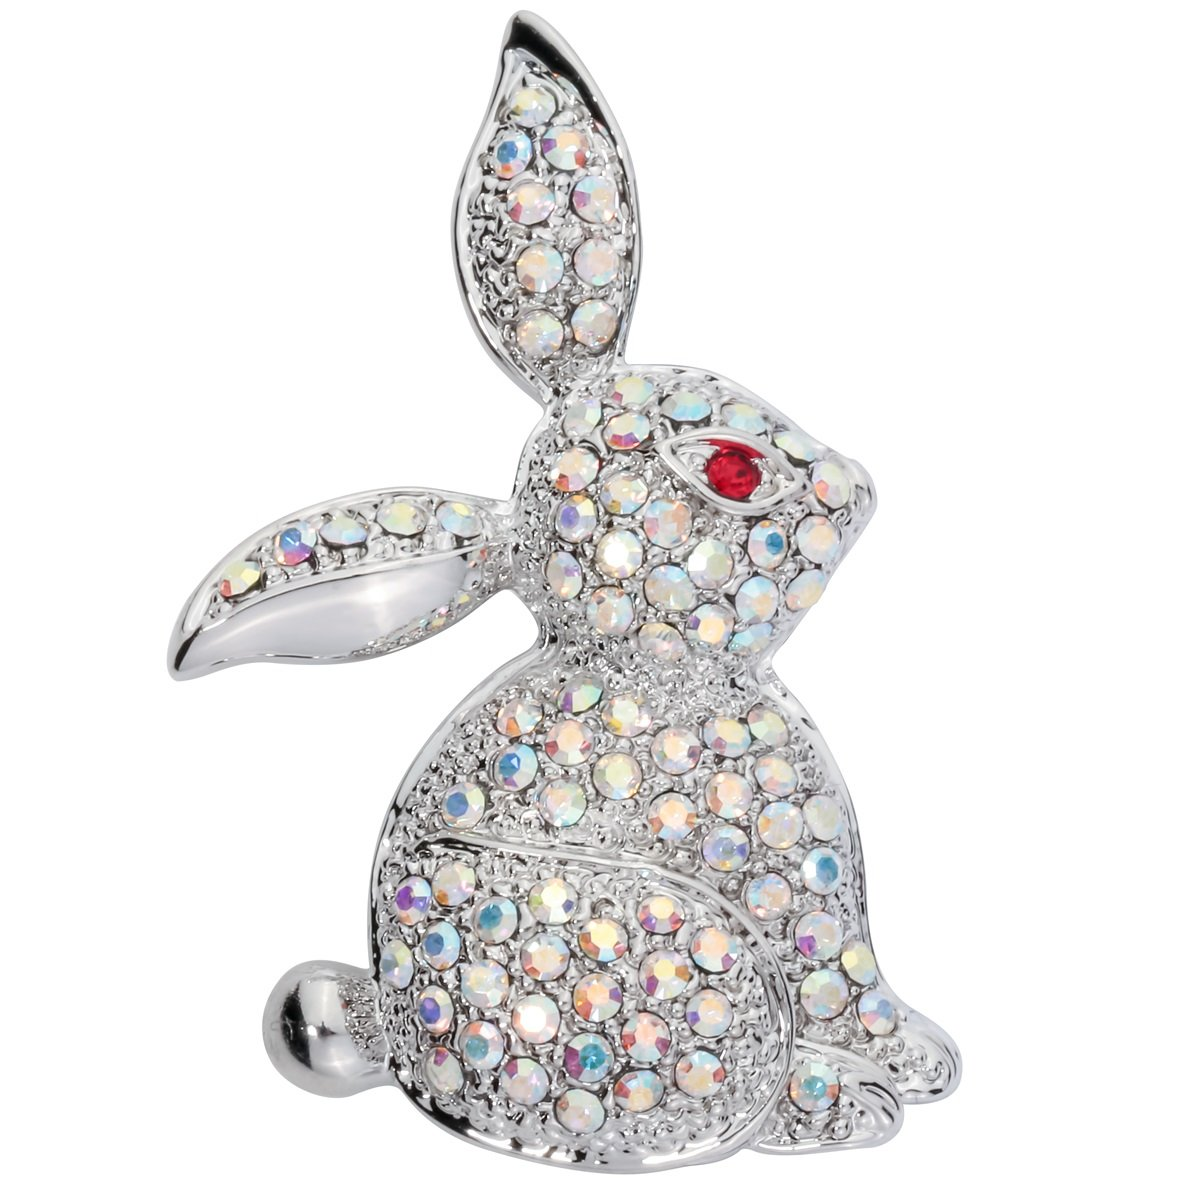 Szxc Jewelry Easter Bunny Rabbit Custom Brooch Pin For Women Teen Girls (white)